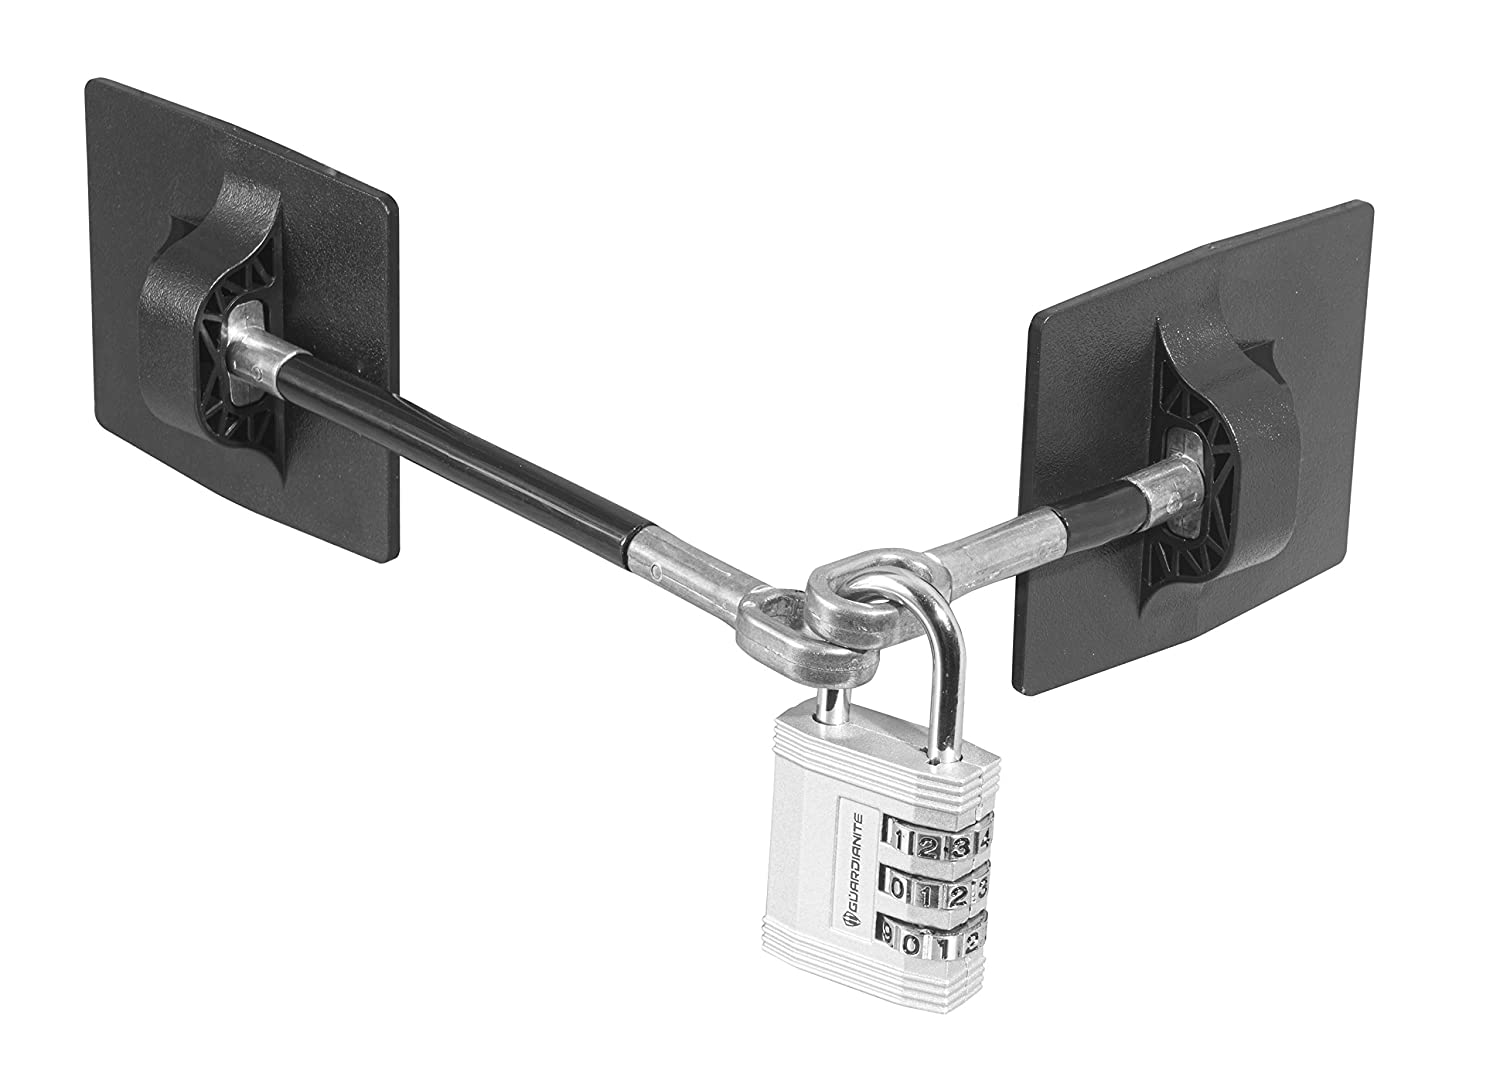 Refrigerator Door Lock with Combination Padlock - Black (Silver Combination Lock)